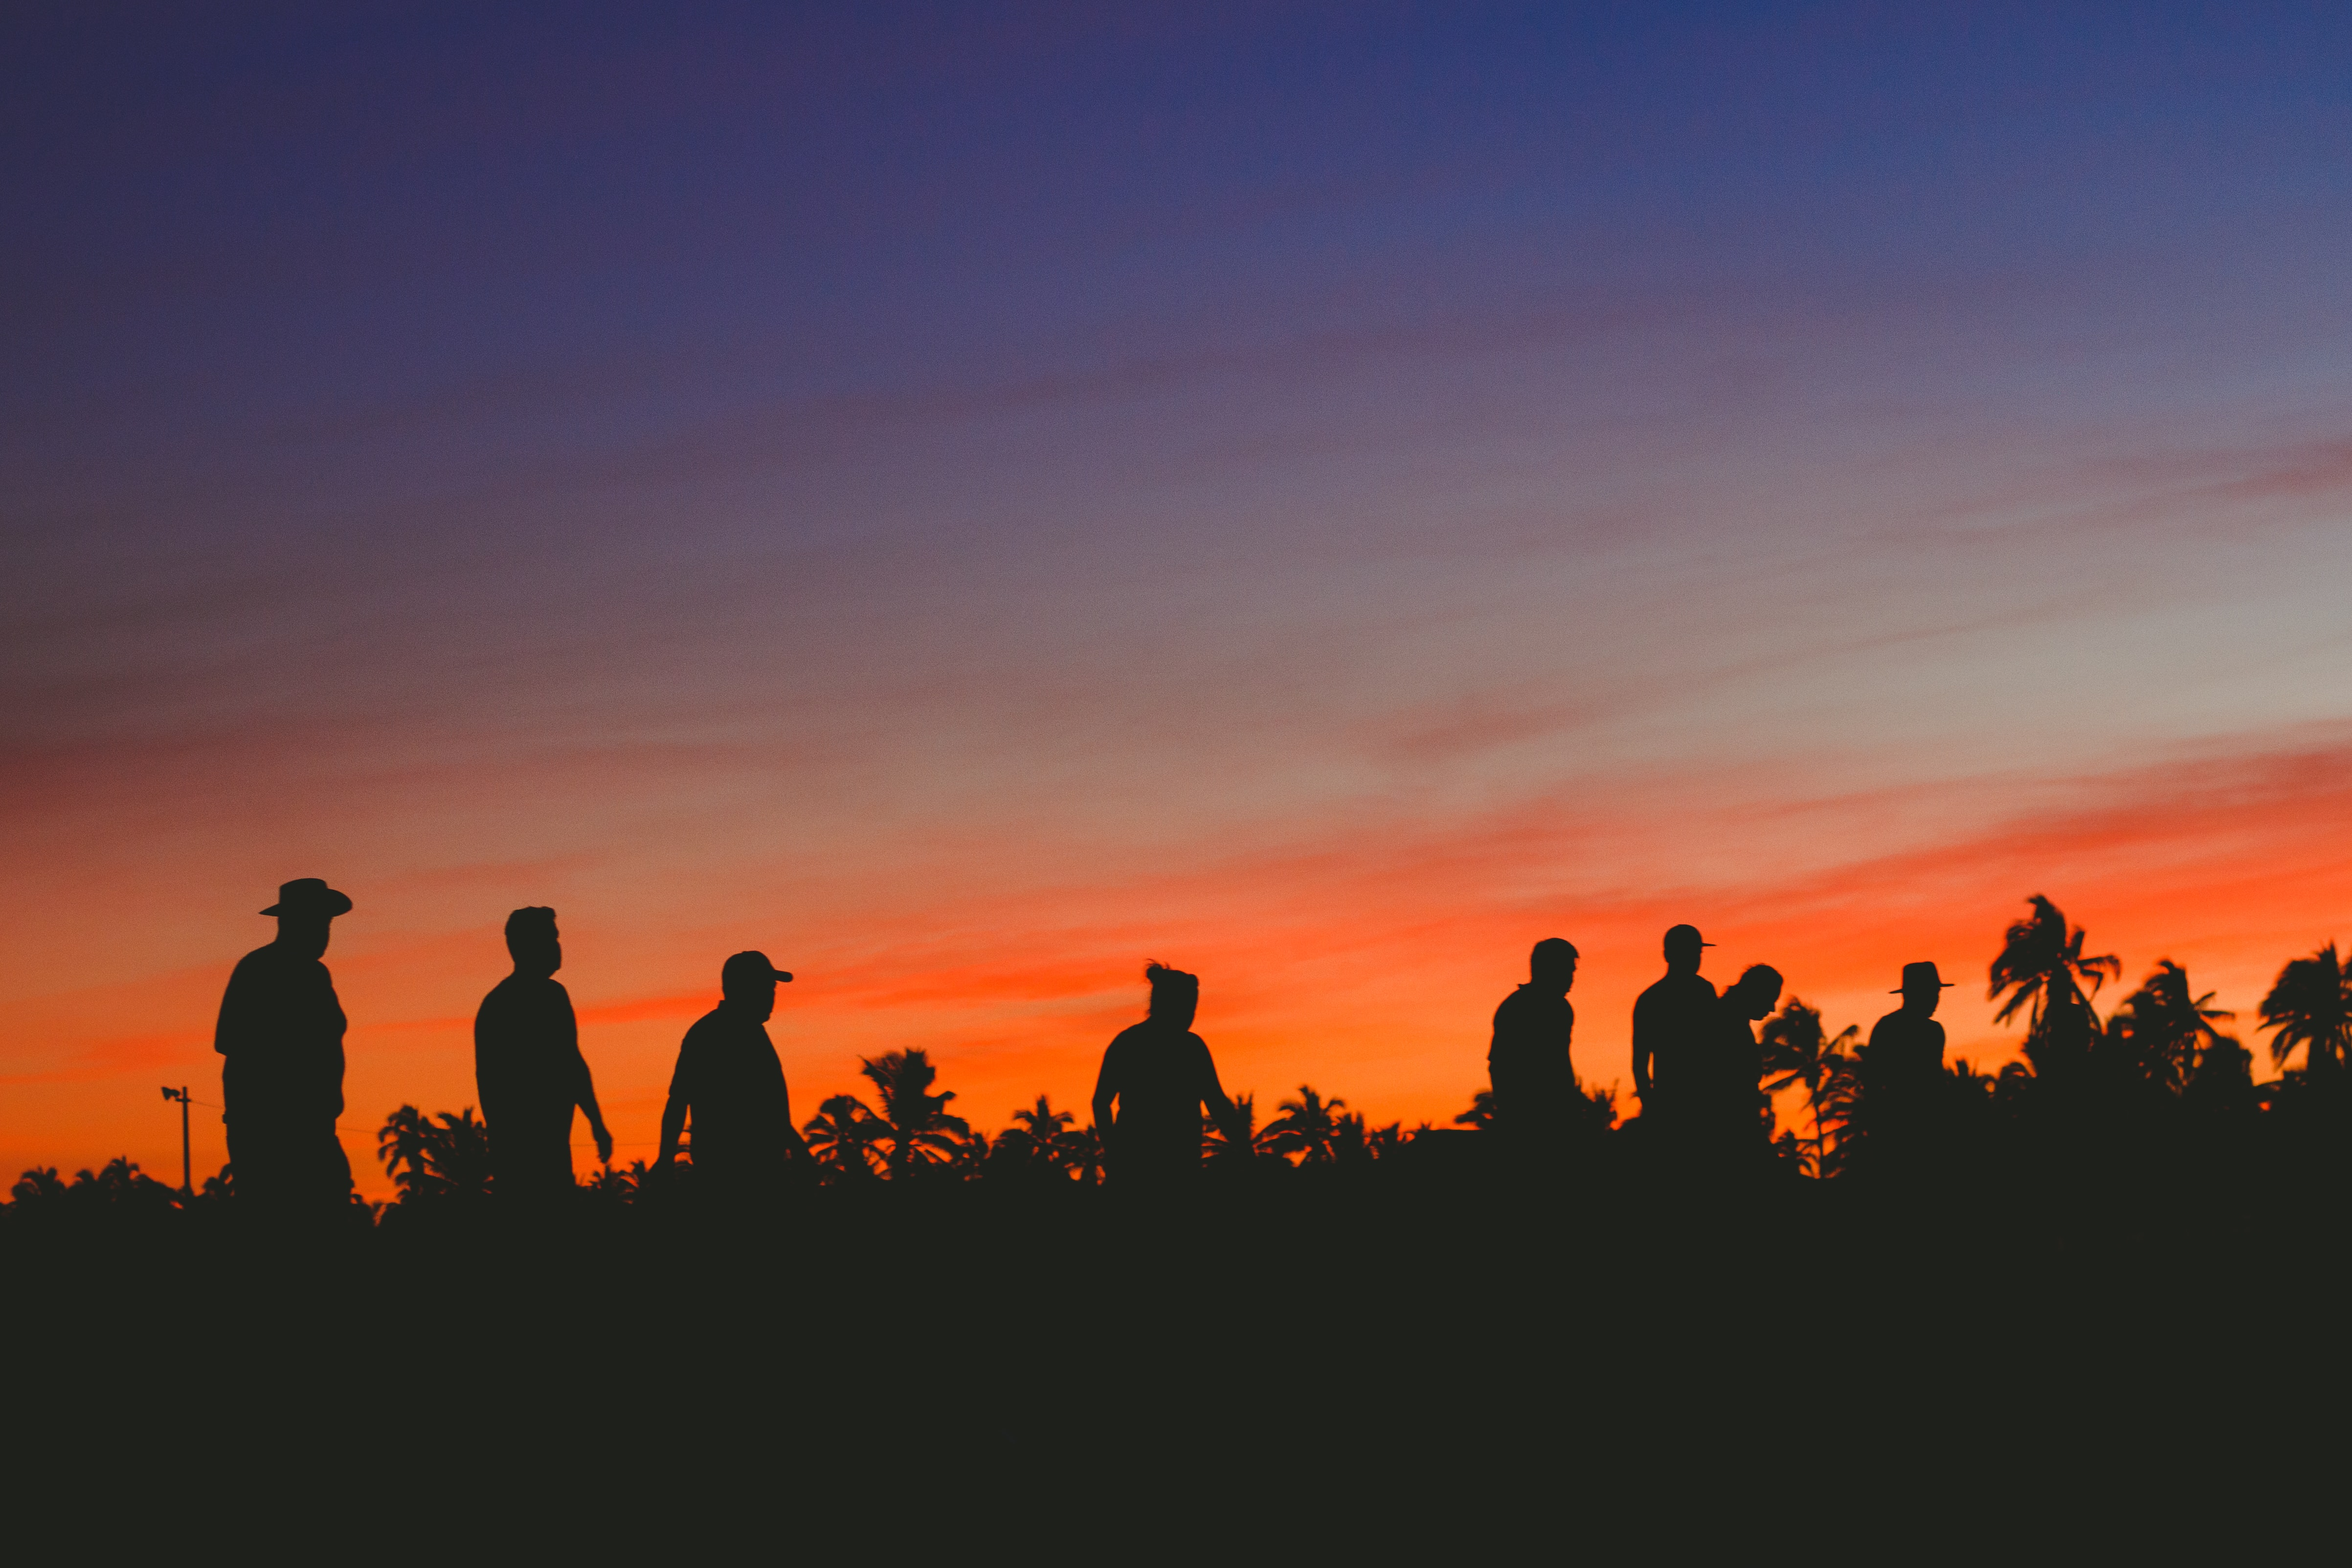 silhouette of people on the field during golden hour